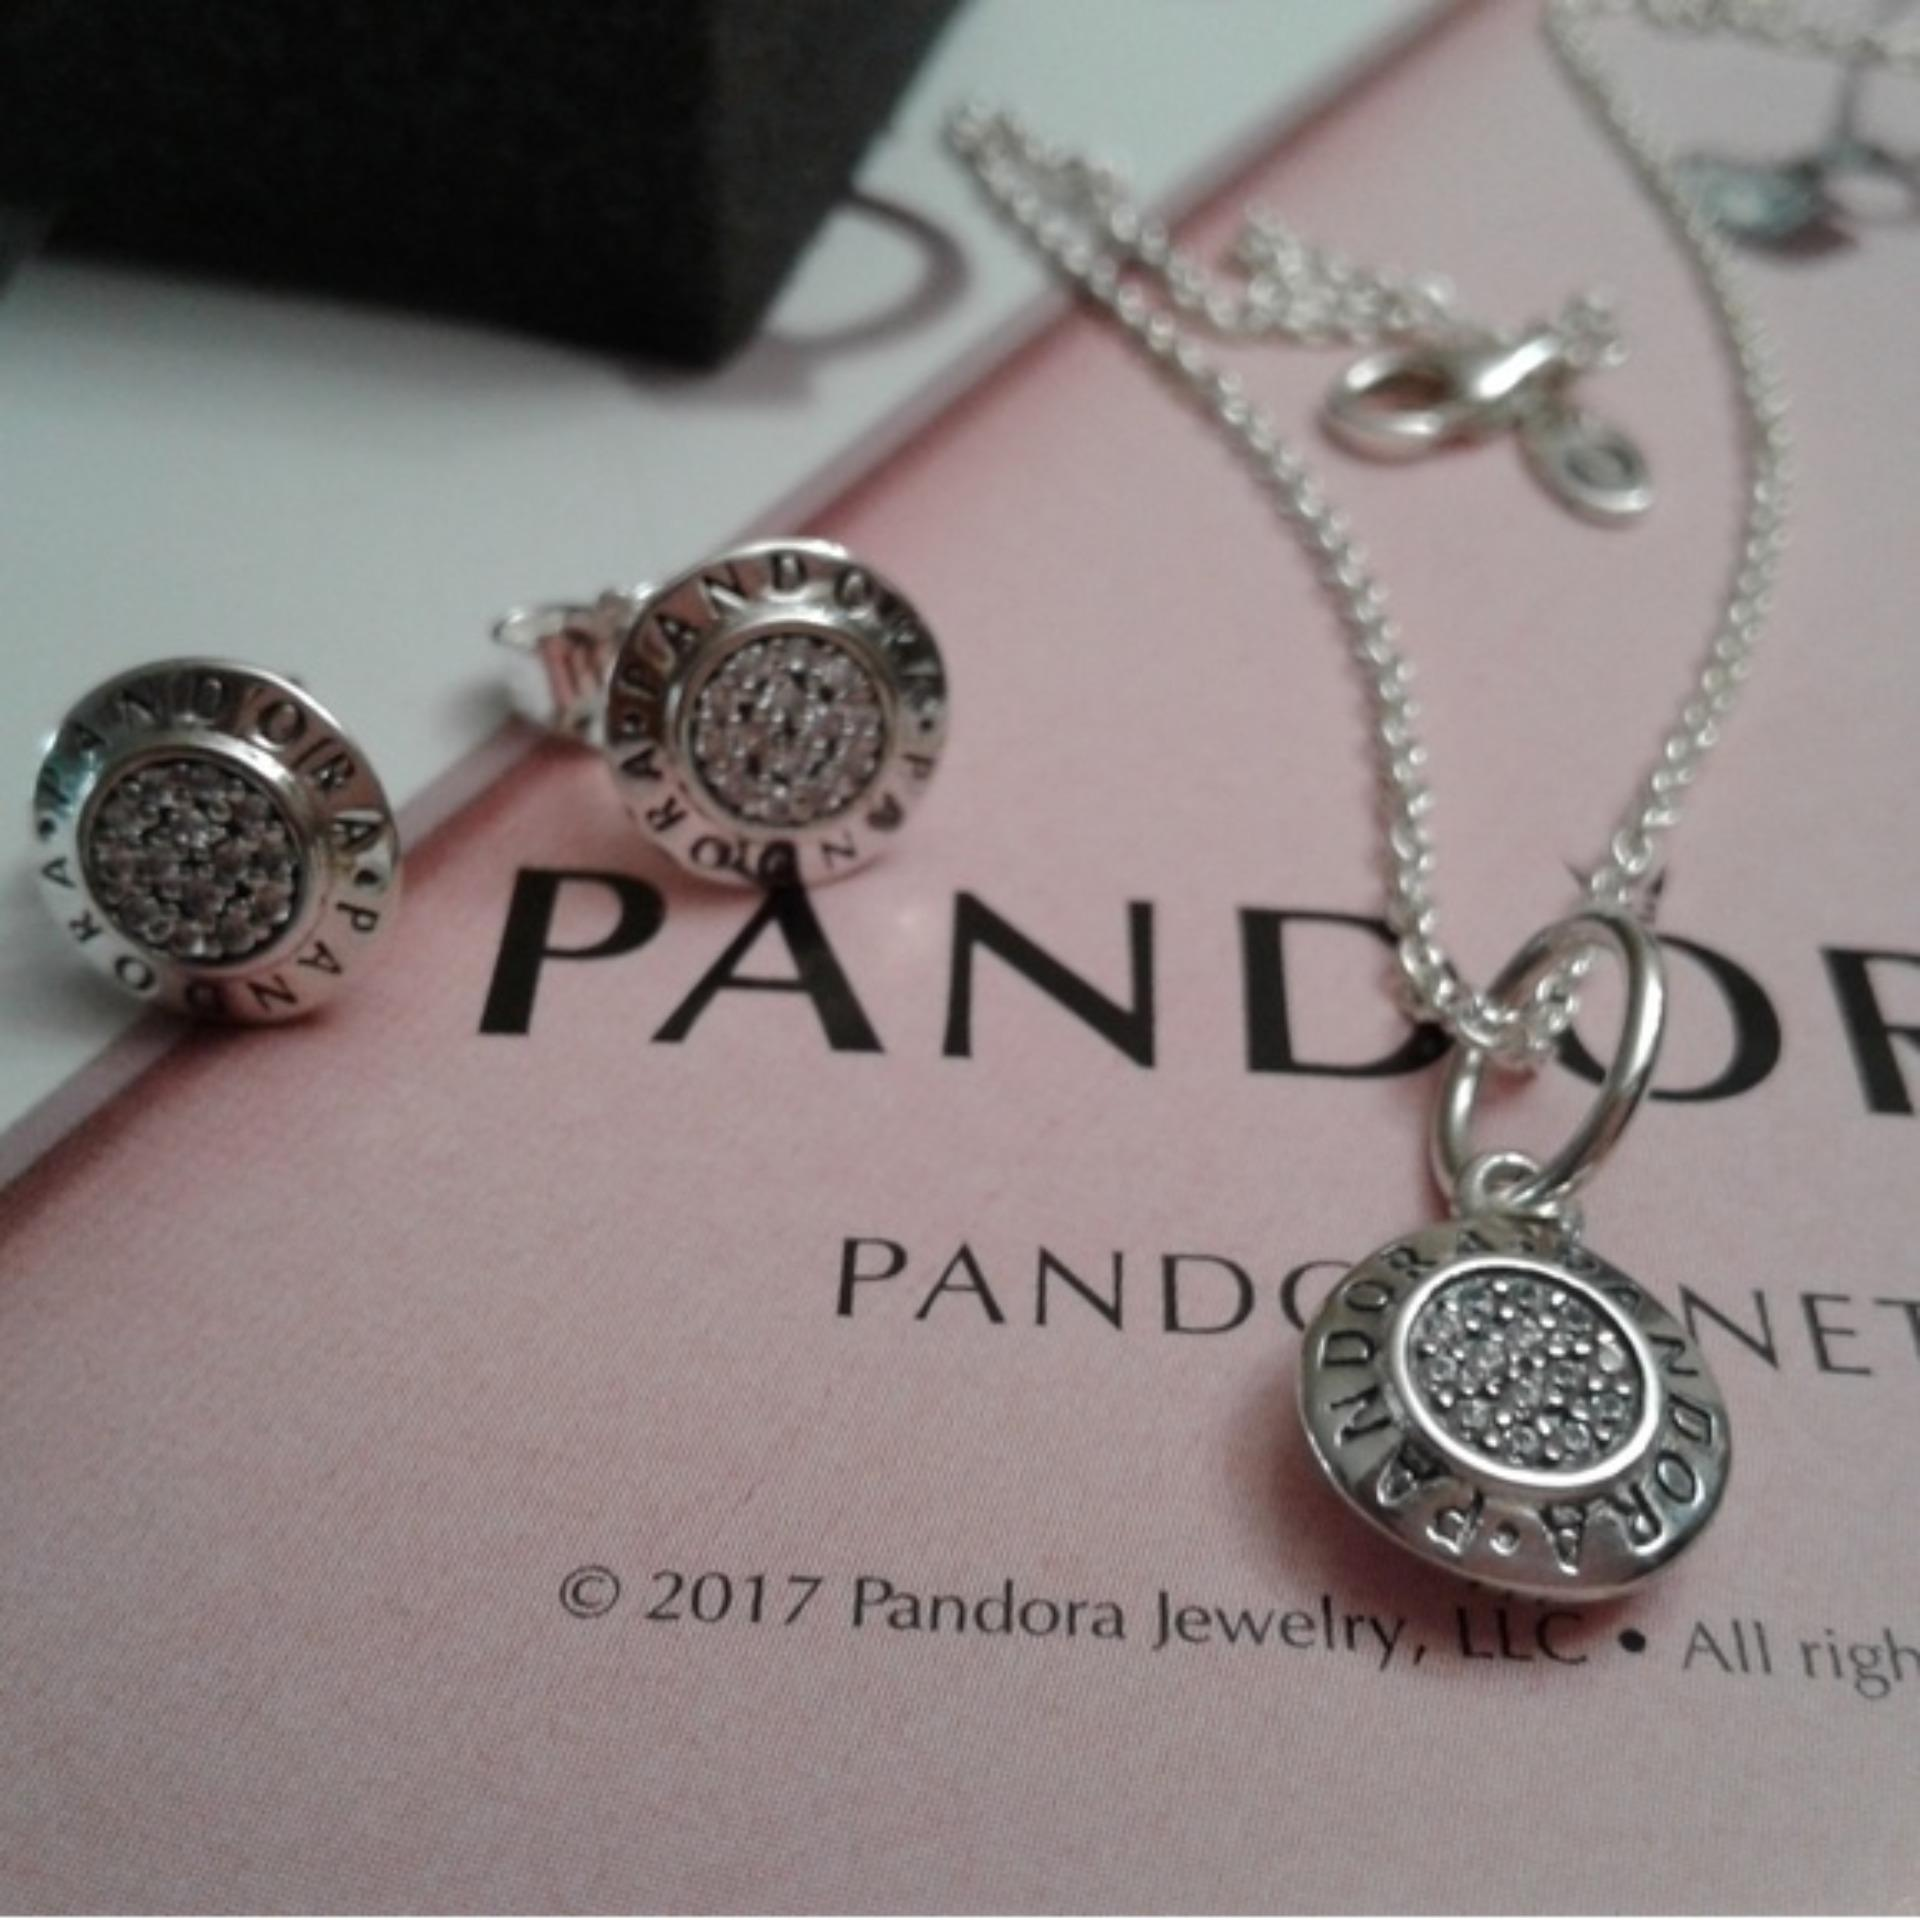 865b4a9bc Pandora Philippines: Pandora price list - Pandora Watches & Charms ...